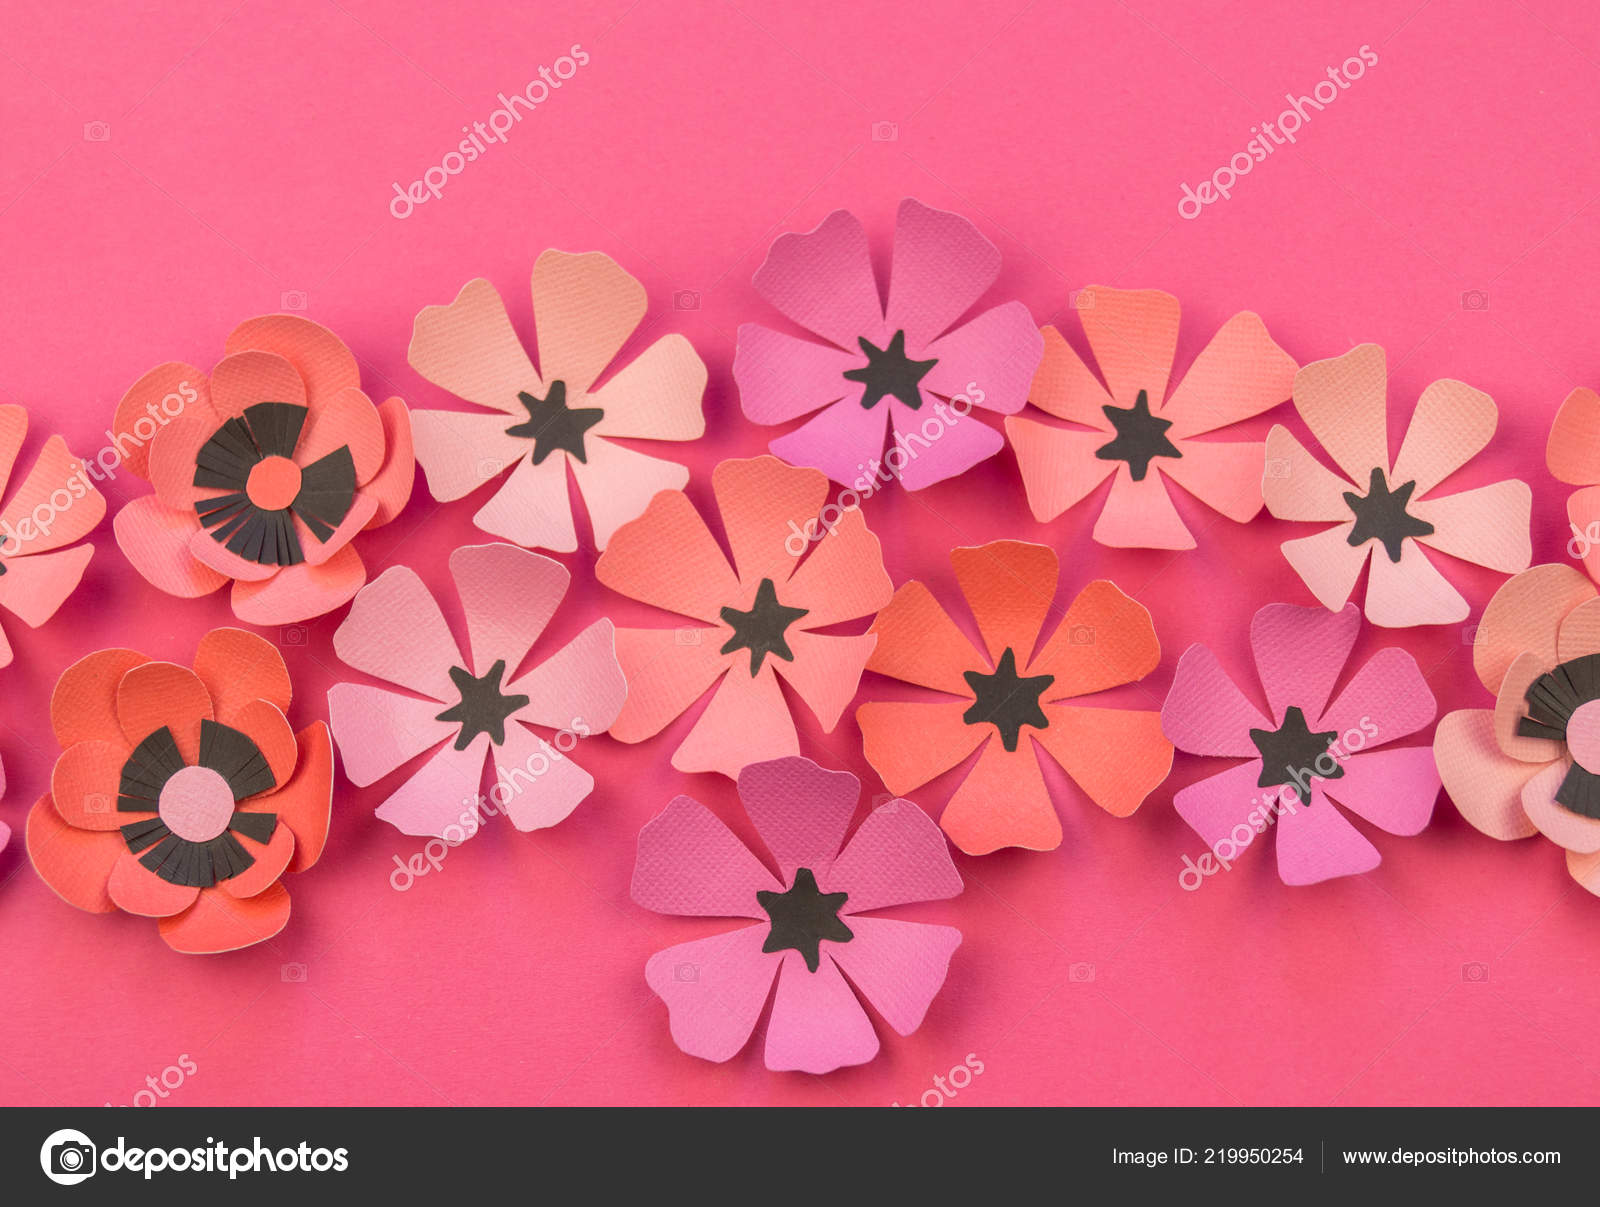 Flower Leaves Made Paper Pink Background Handwork Favorite Hobby